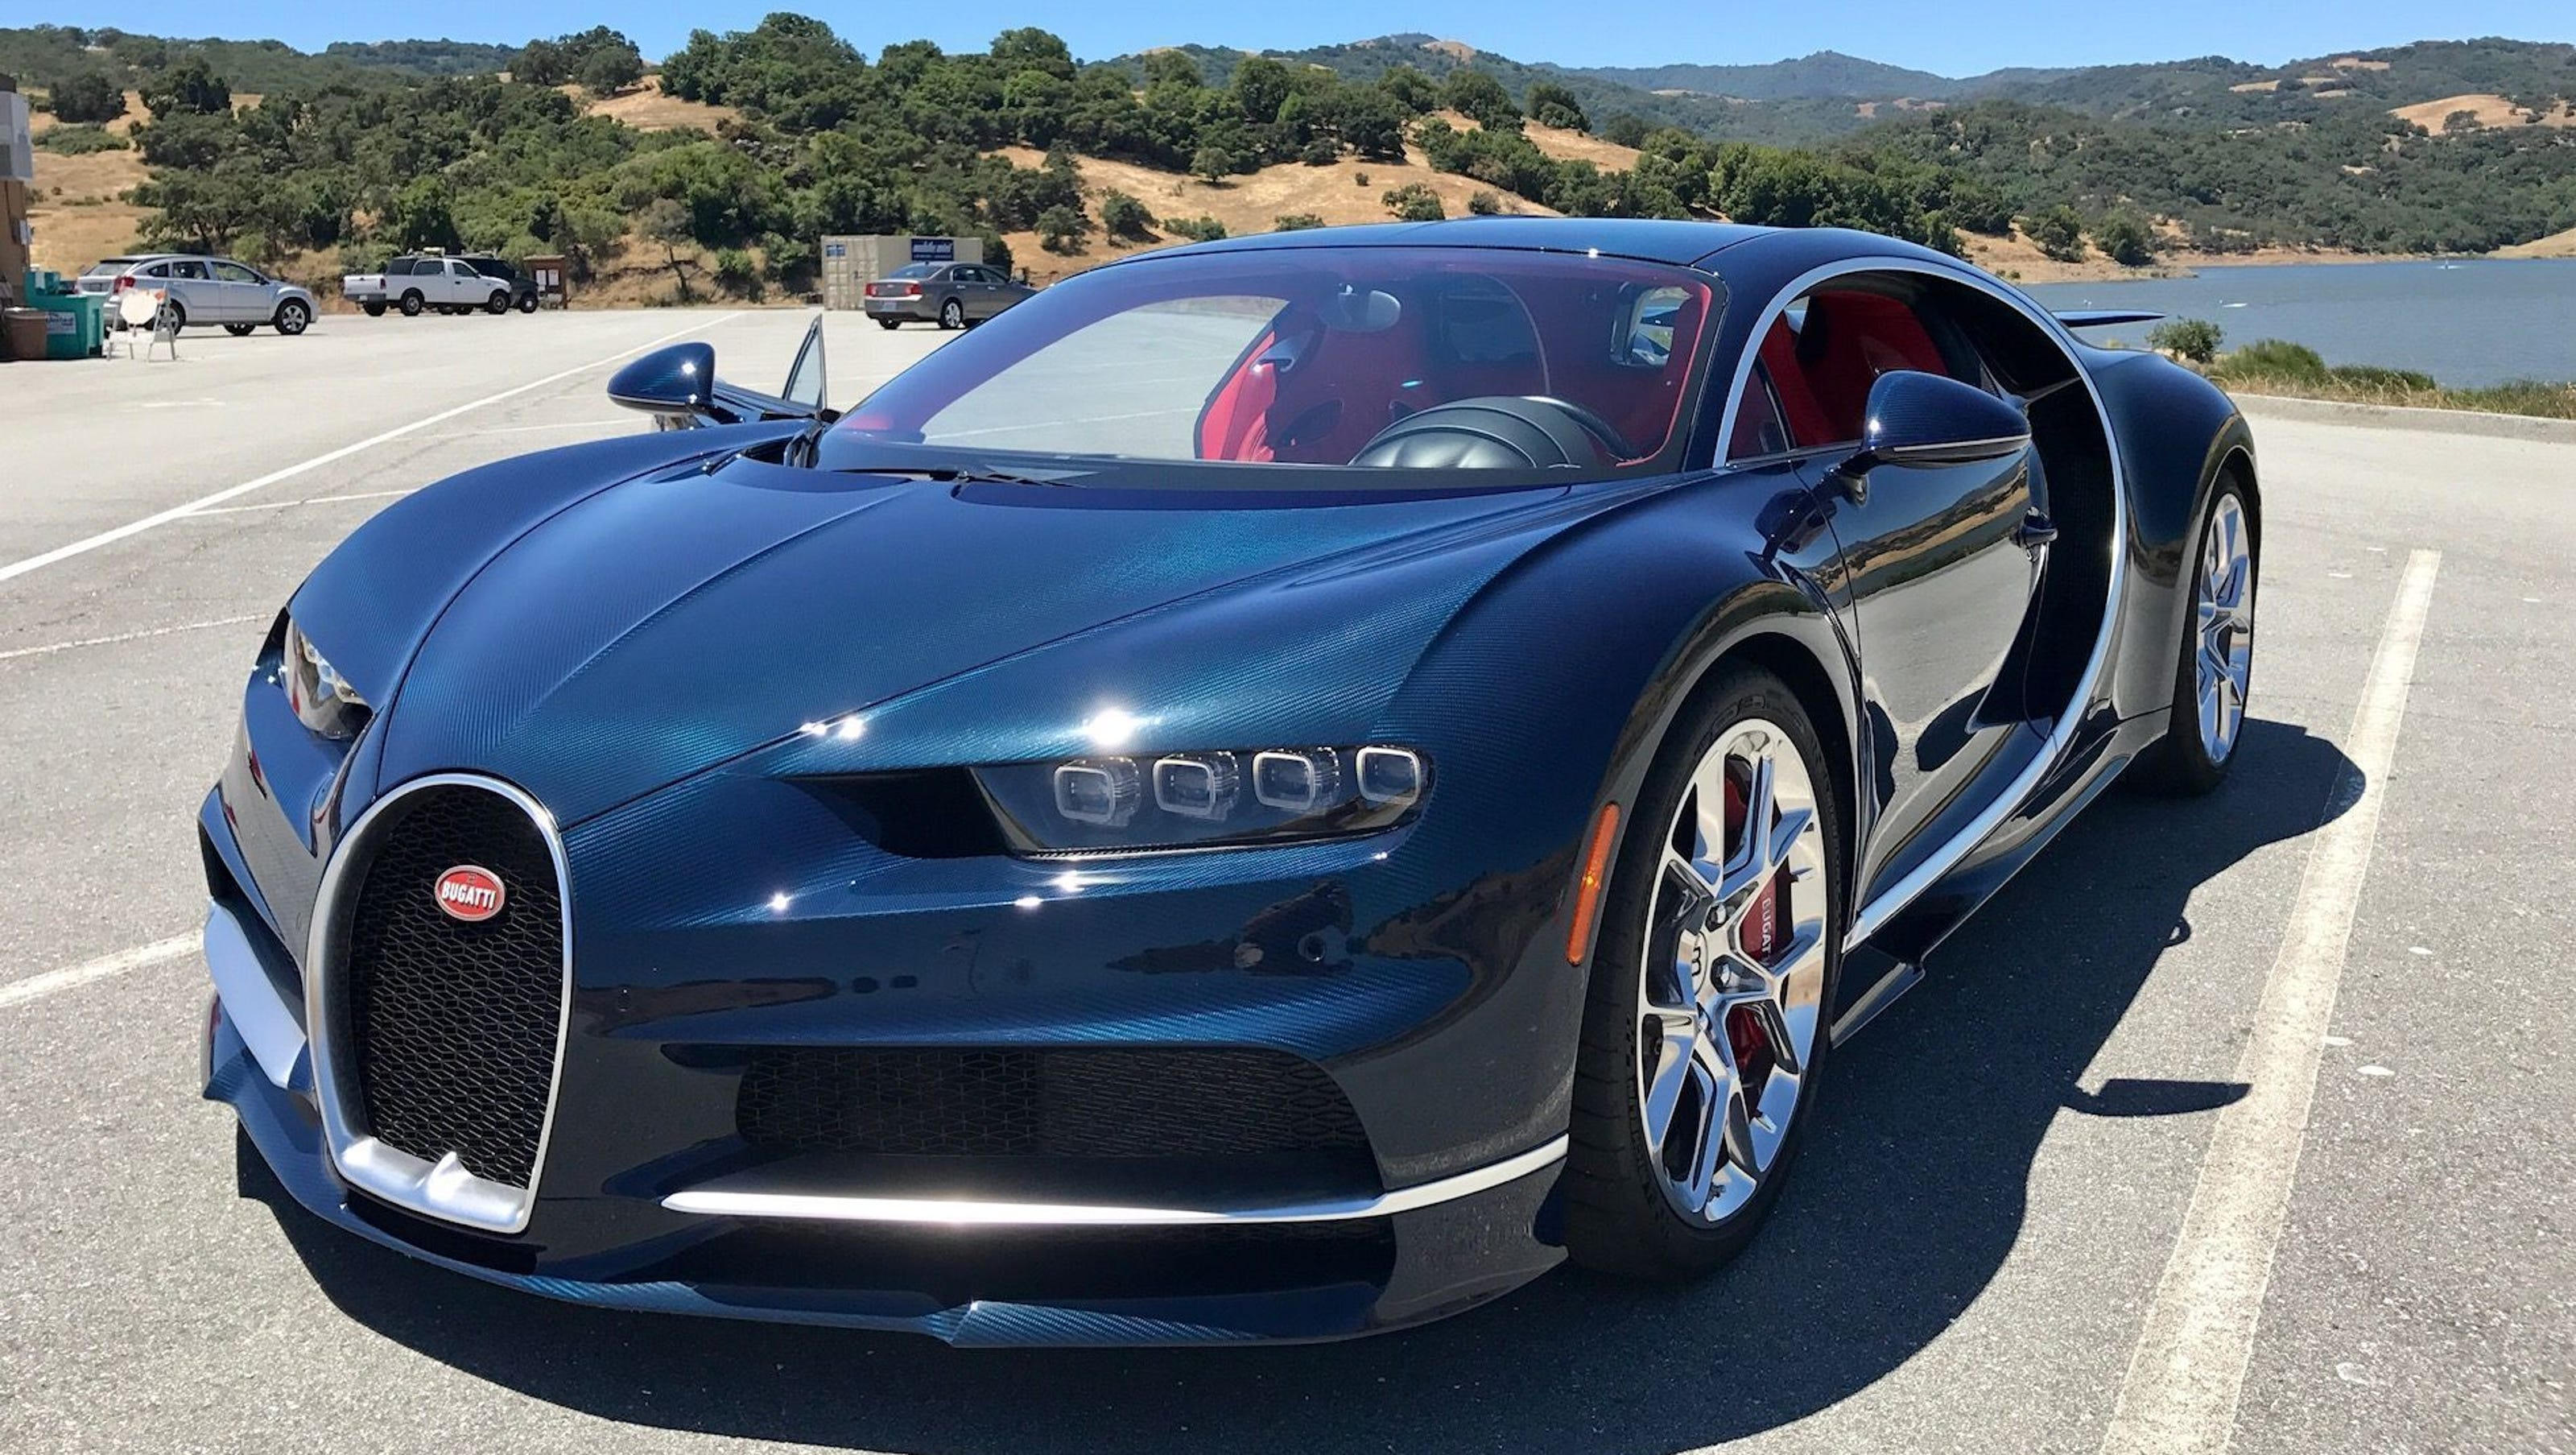 review: bugatti's chiron supercar is $3m of 'hold on!'